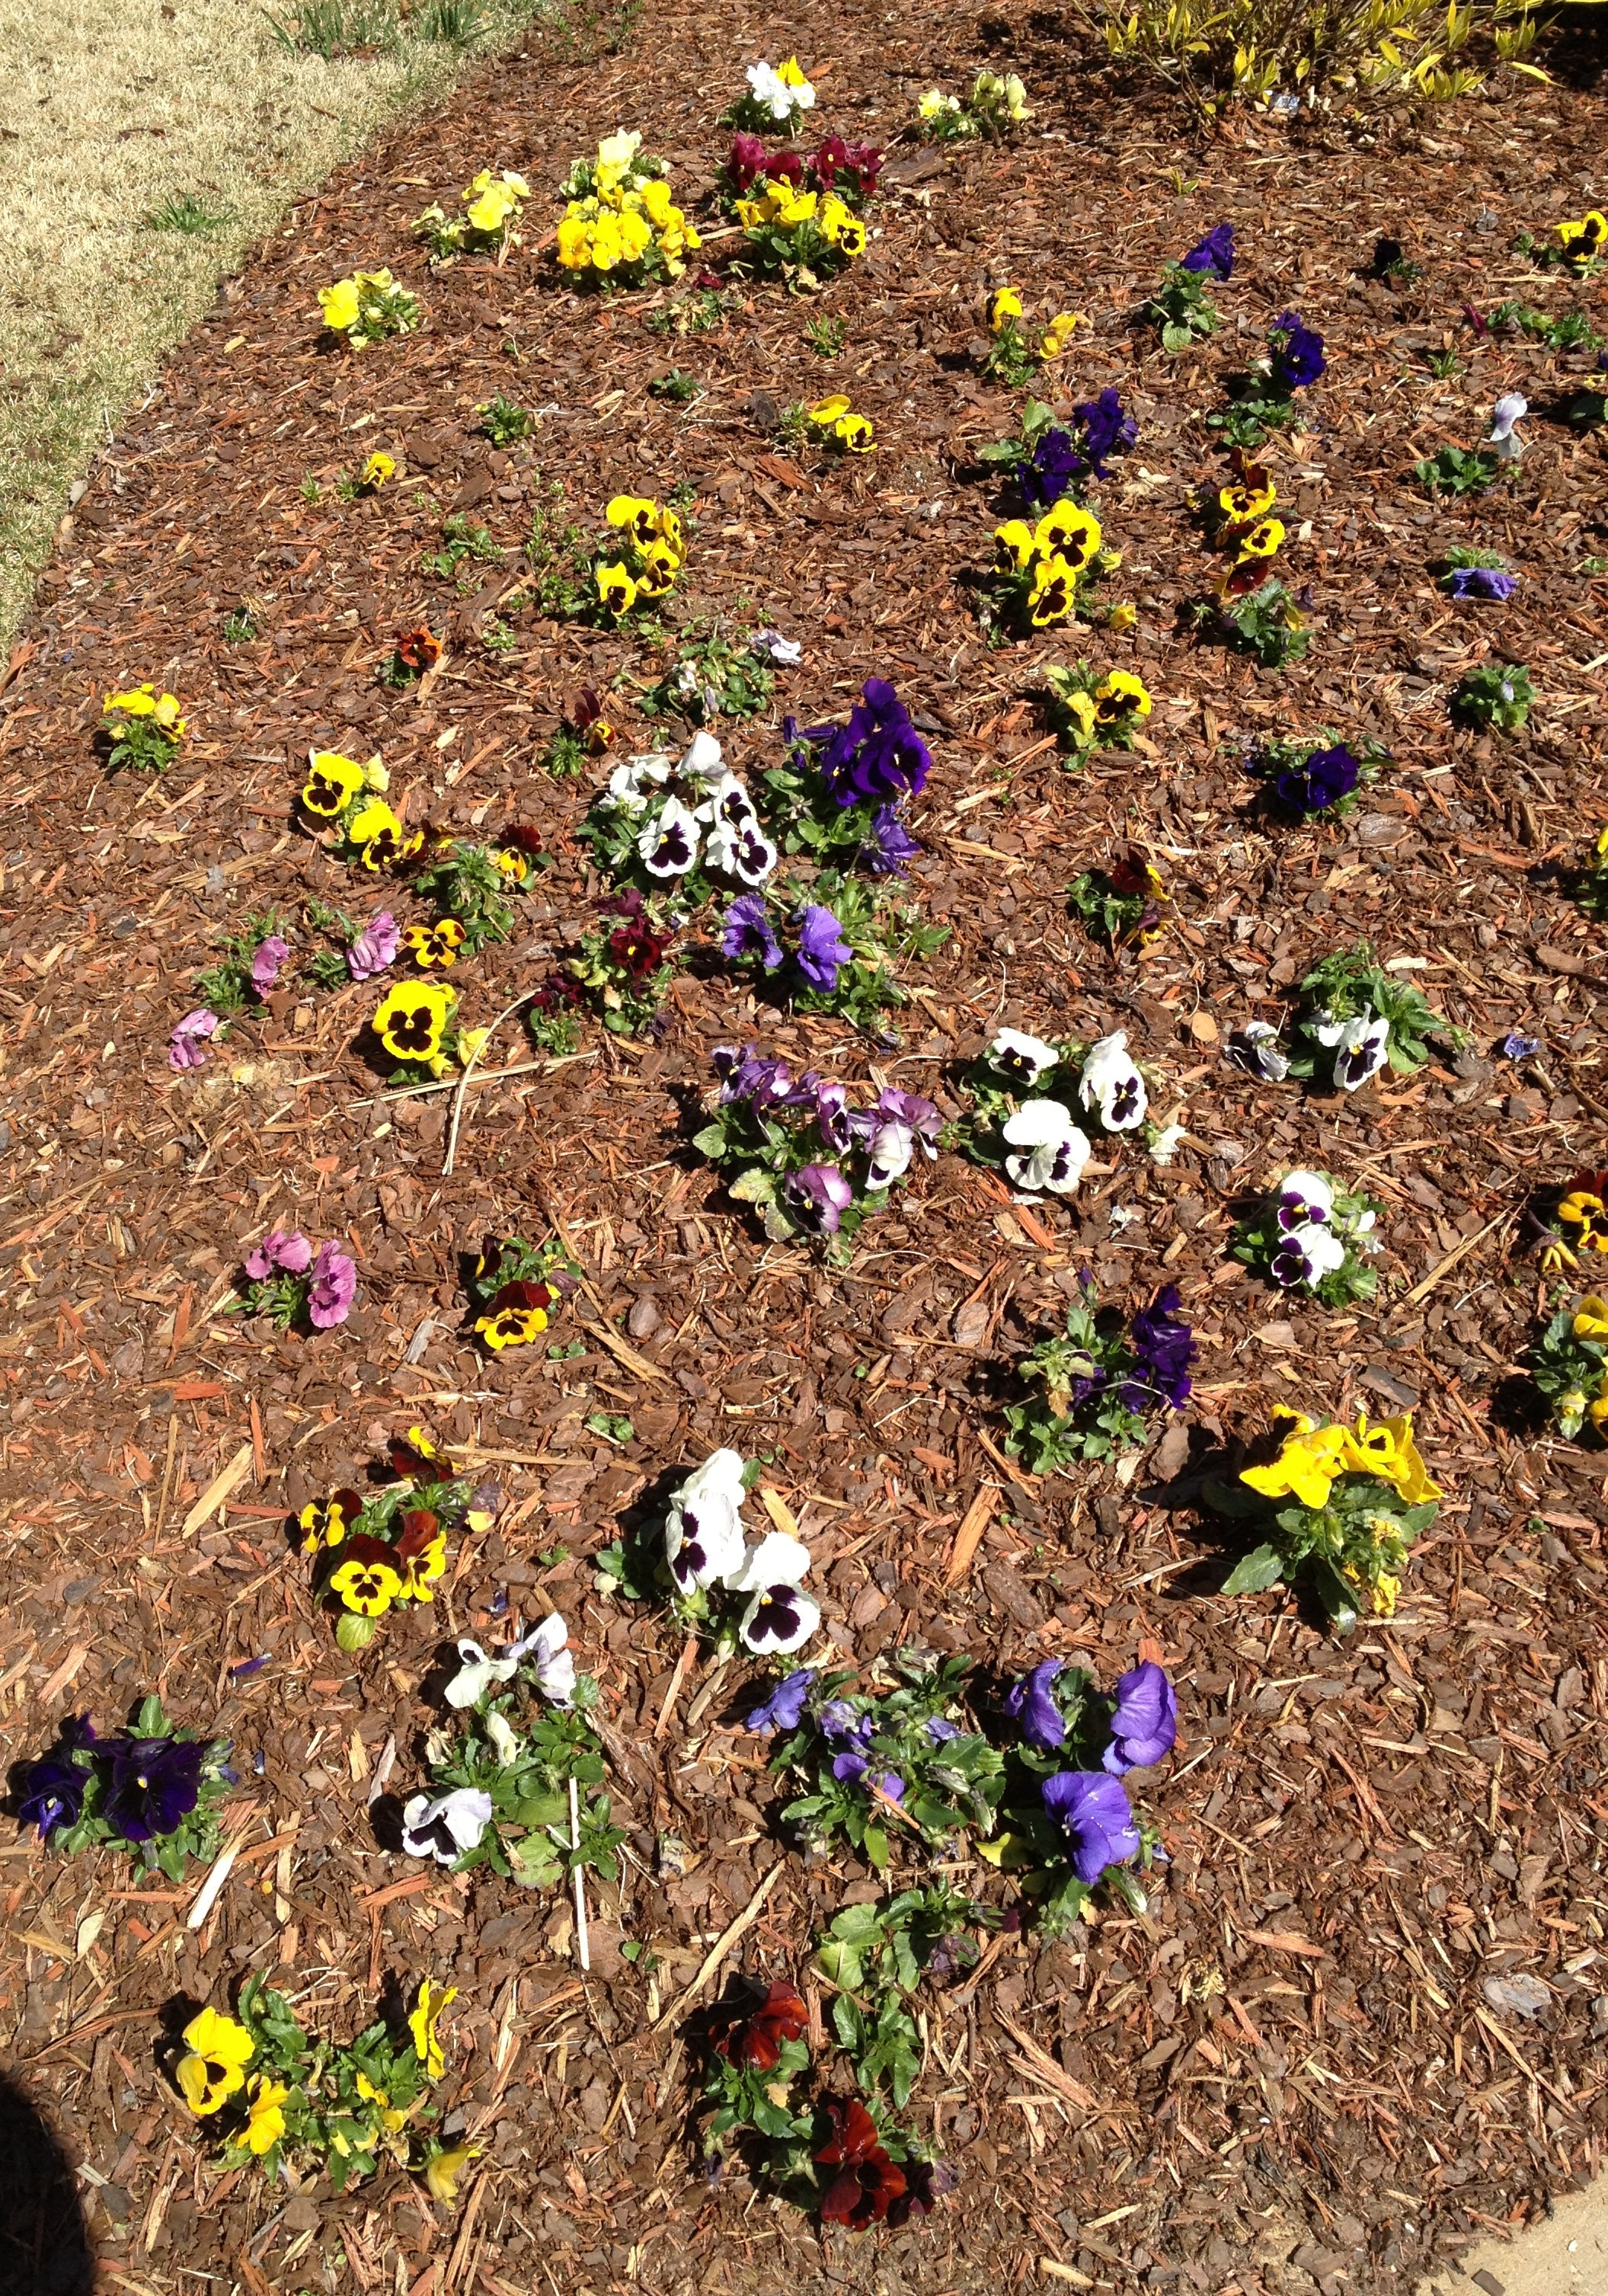 Pansies without Flower & Garden Mulch